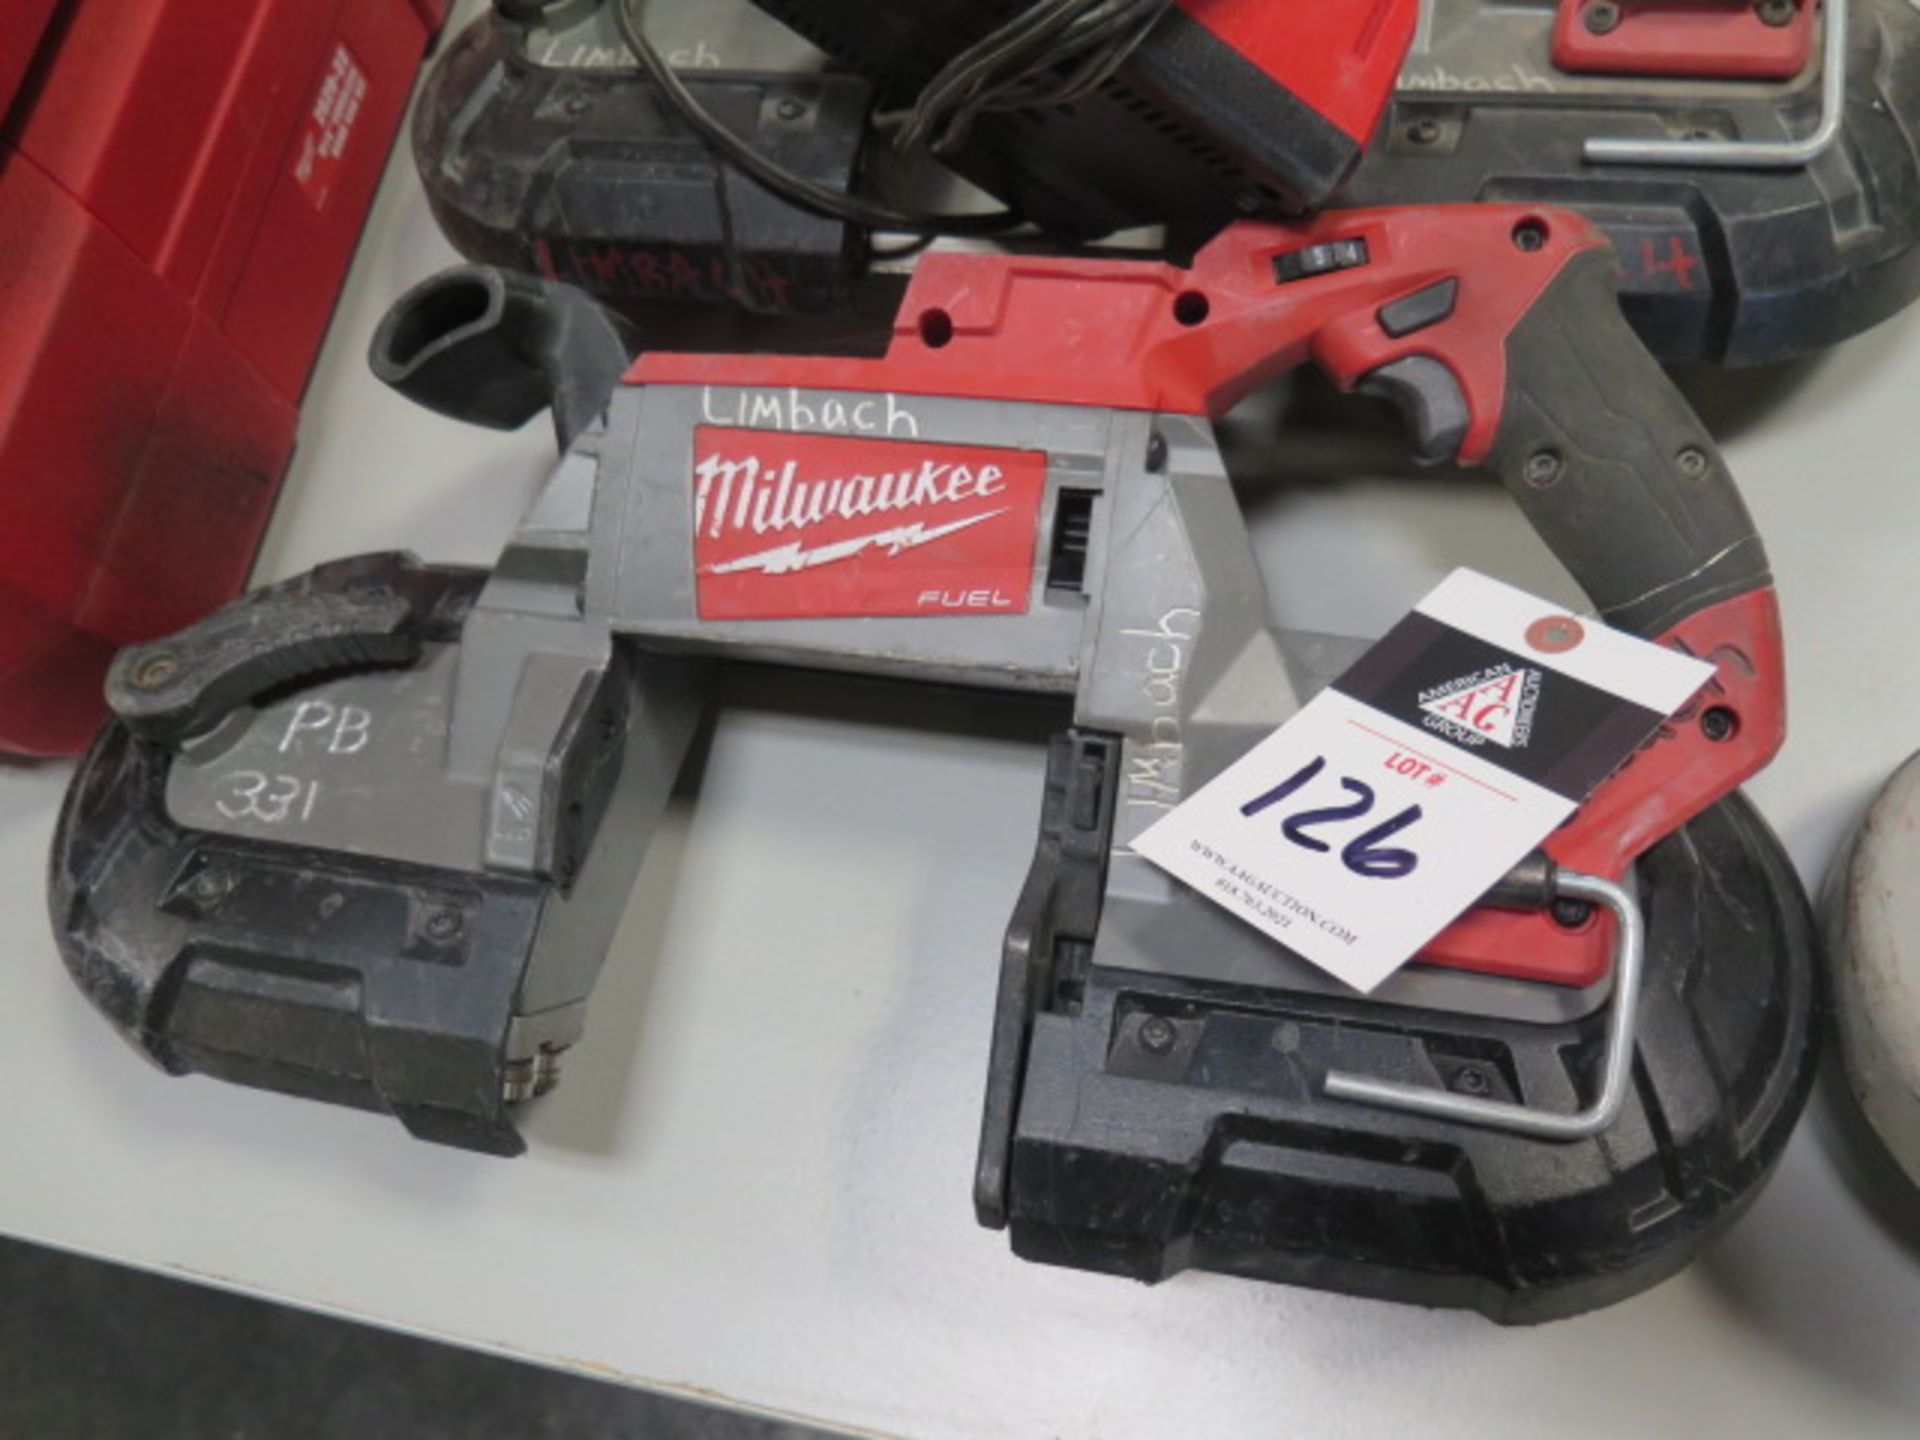 Milwaukee 18 Volt Portable Band Saws (3) (SOLD AS-IS - NO WARRANTY) - Image 3 of 7